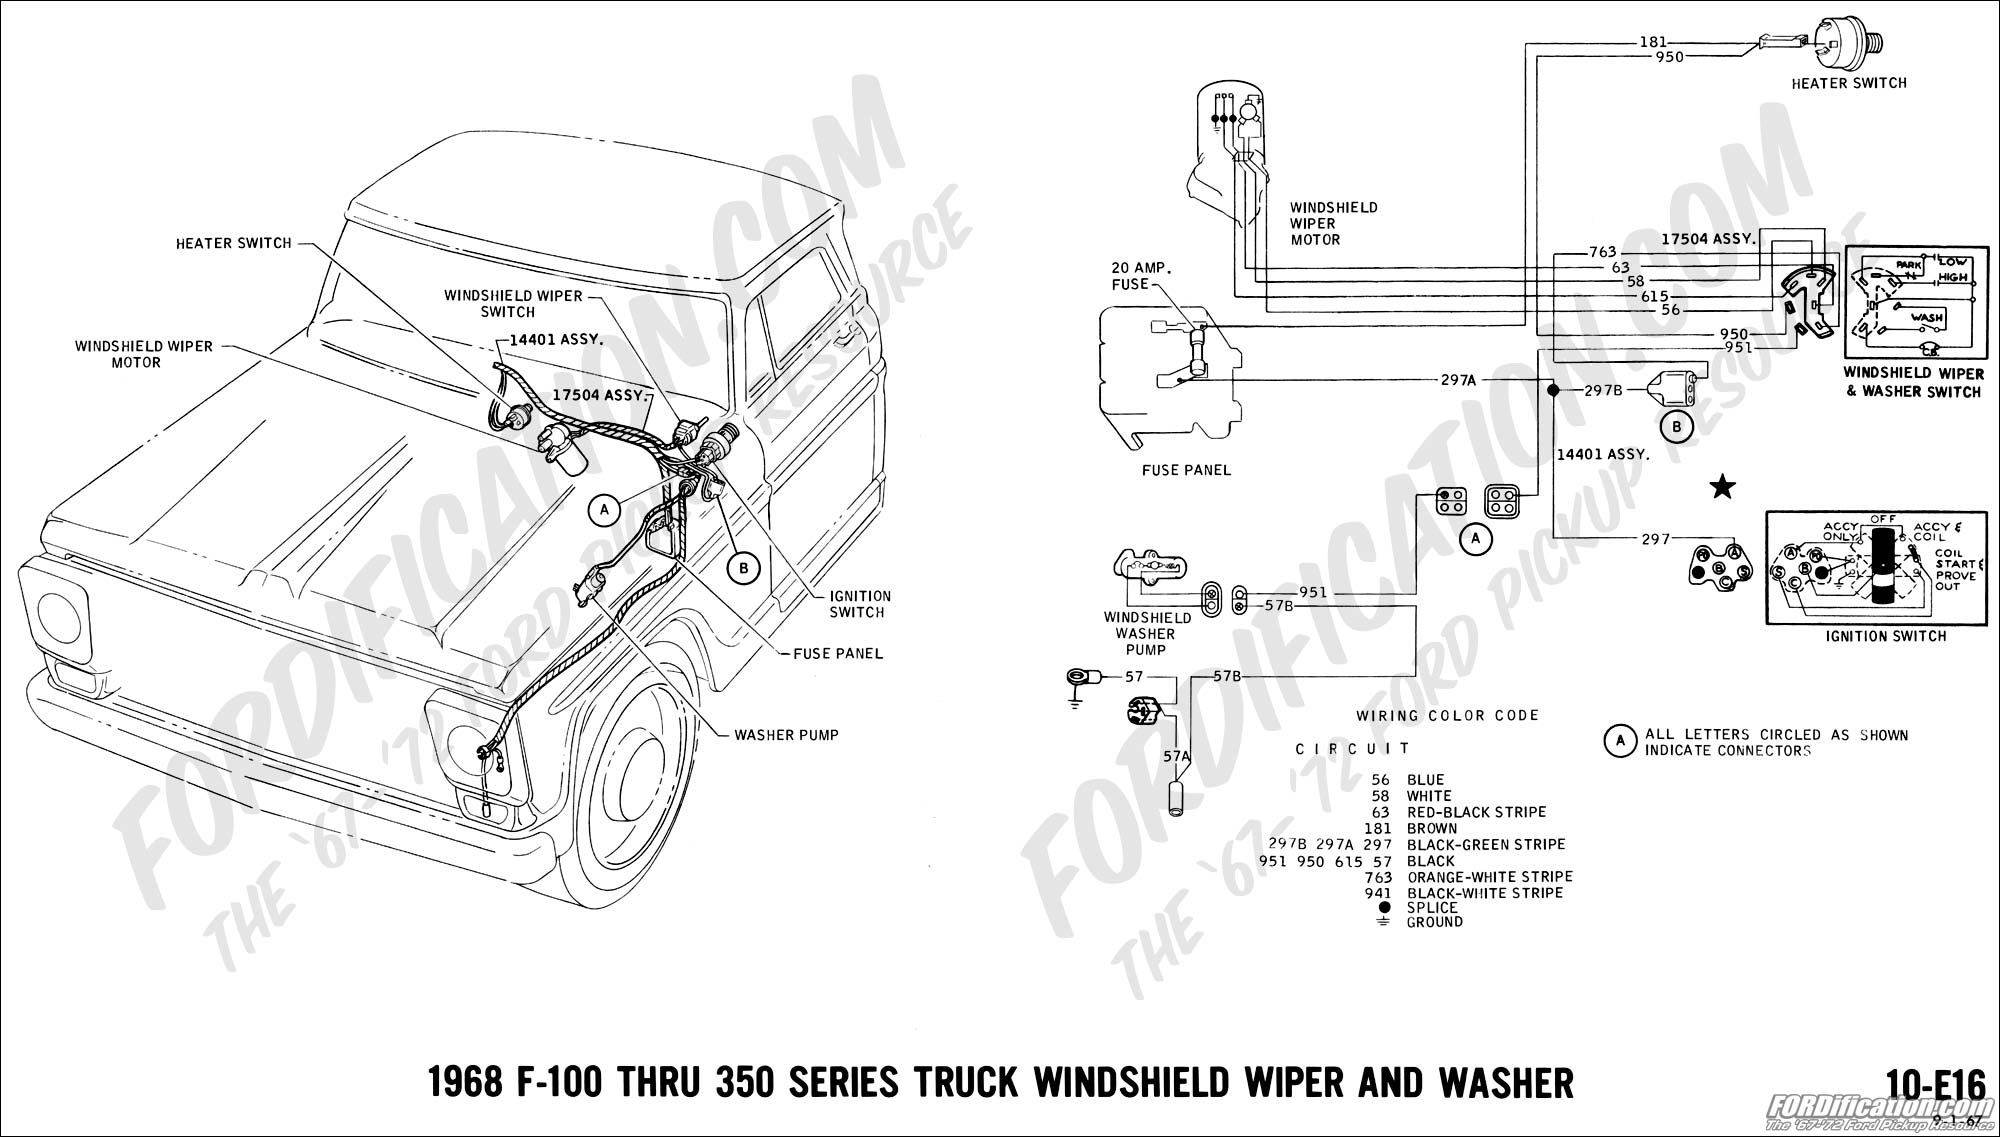 68 18 1985 ford ranger wiring diagram ford ranger fuel system diagram 1985 ford alternator wiring diagram at gsmportal.co